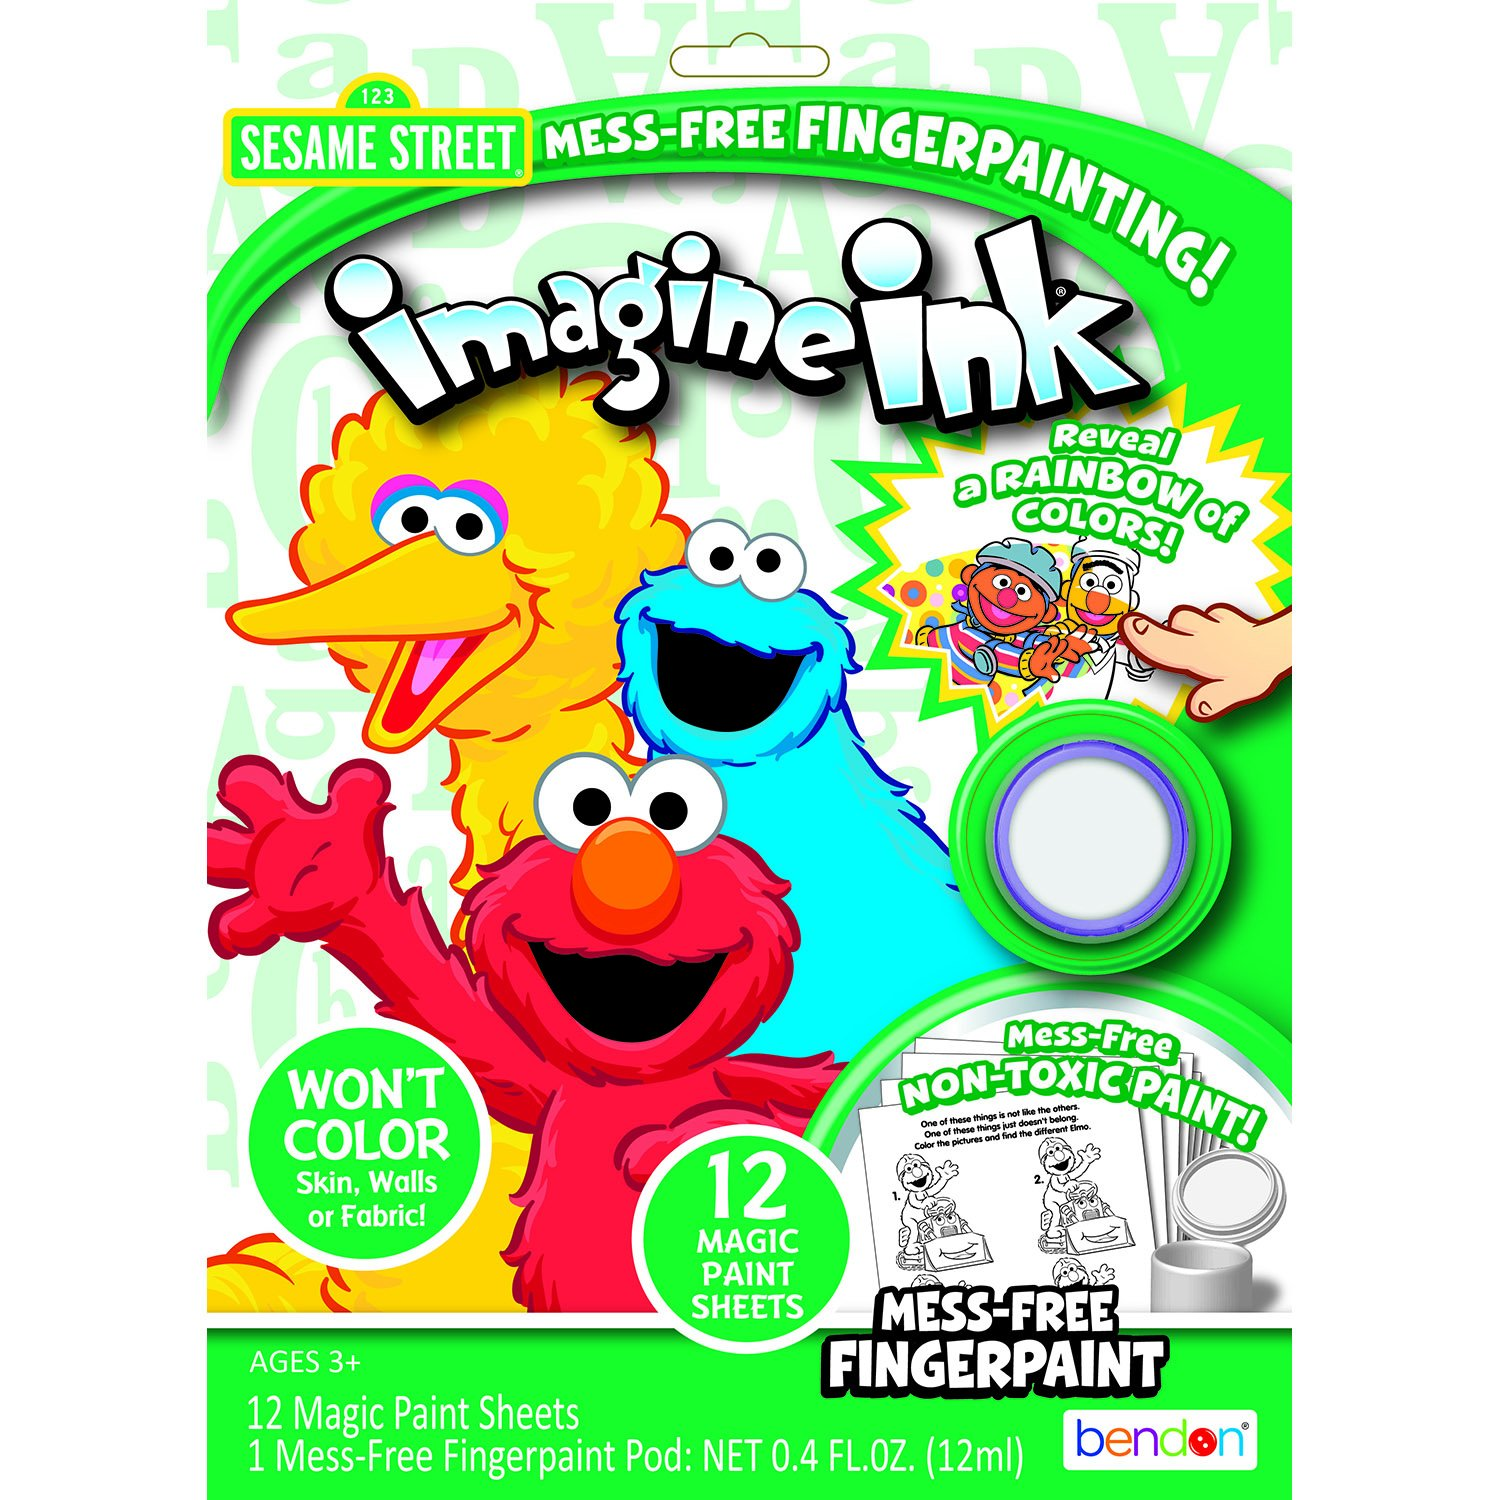 Amazon.com: Bendon Sesame Street Imagine Ink Mess-Free Fingerpaint ...